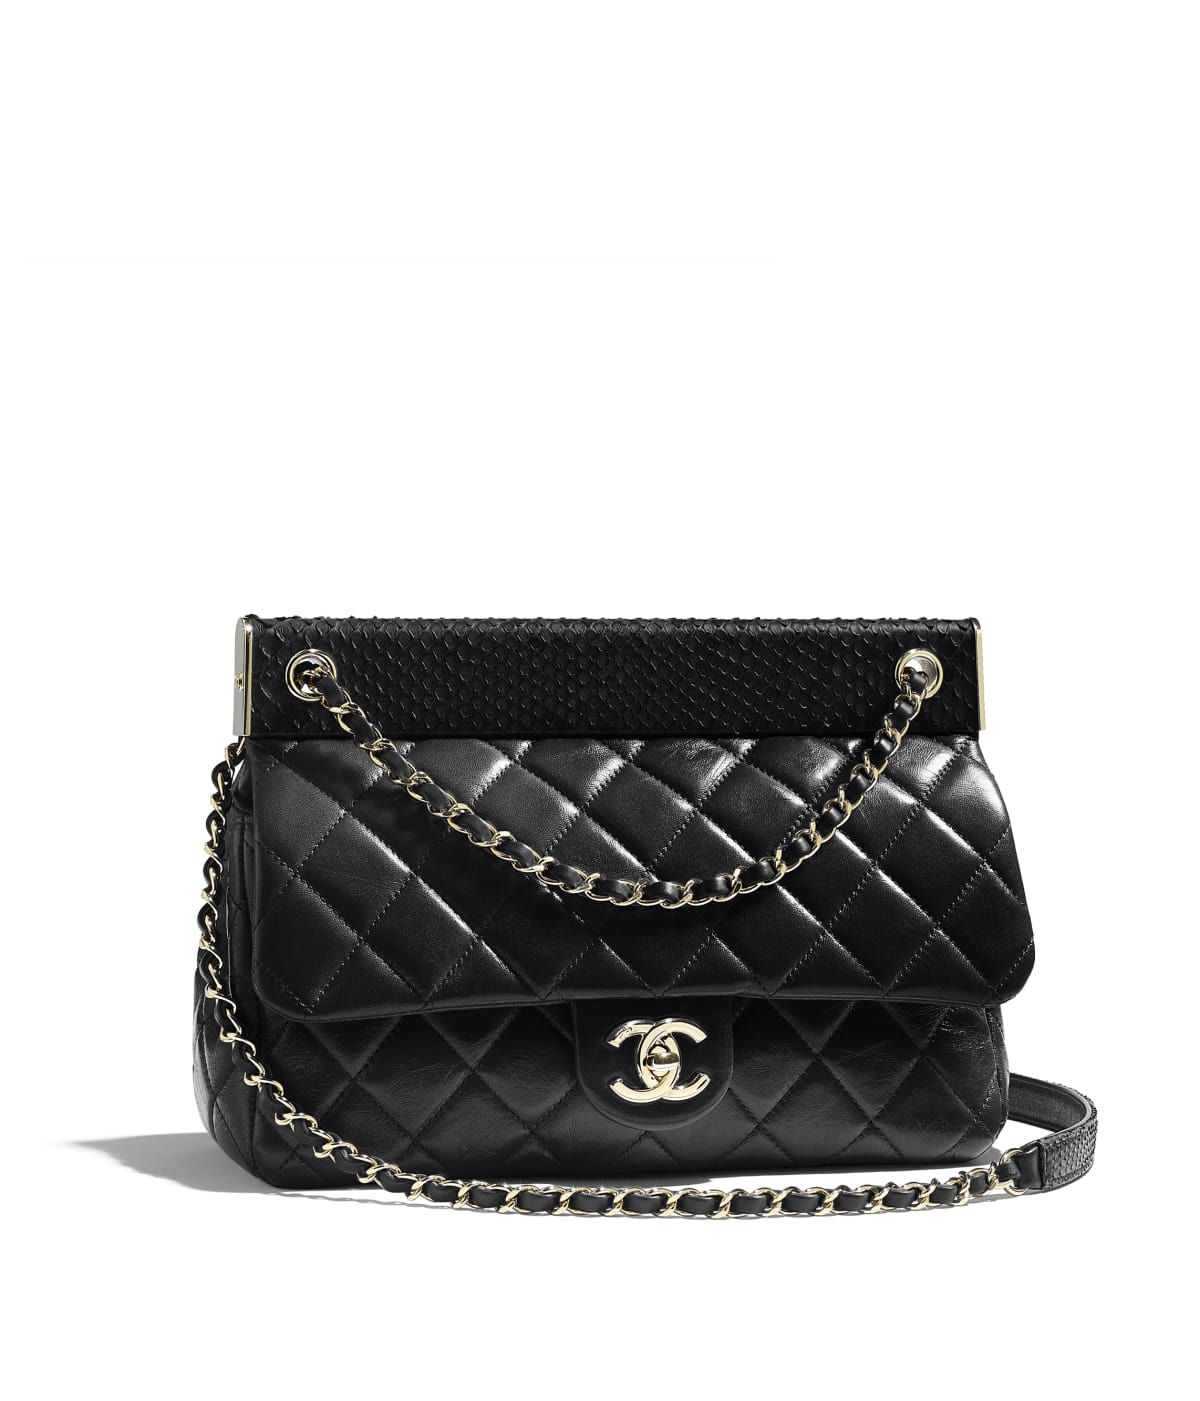 59e63aa40 Bolsa of the Outono-Inverno 2018/19 CHANEL Fashion collection : Bolsa,  couro de cordeiro, python & metal dourado, preto on the CHANEL official  website.